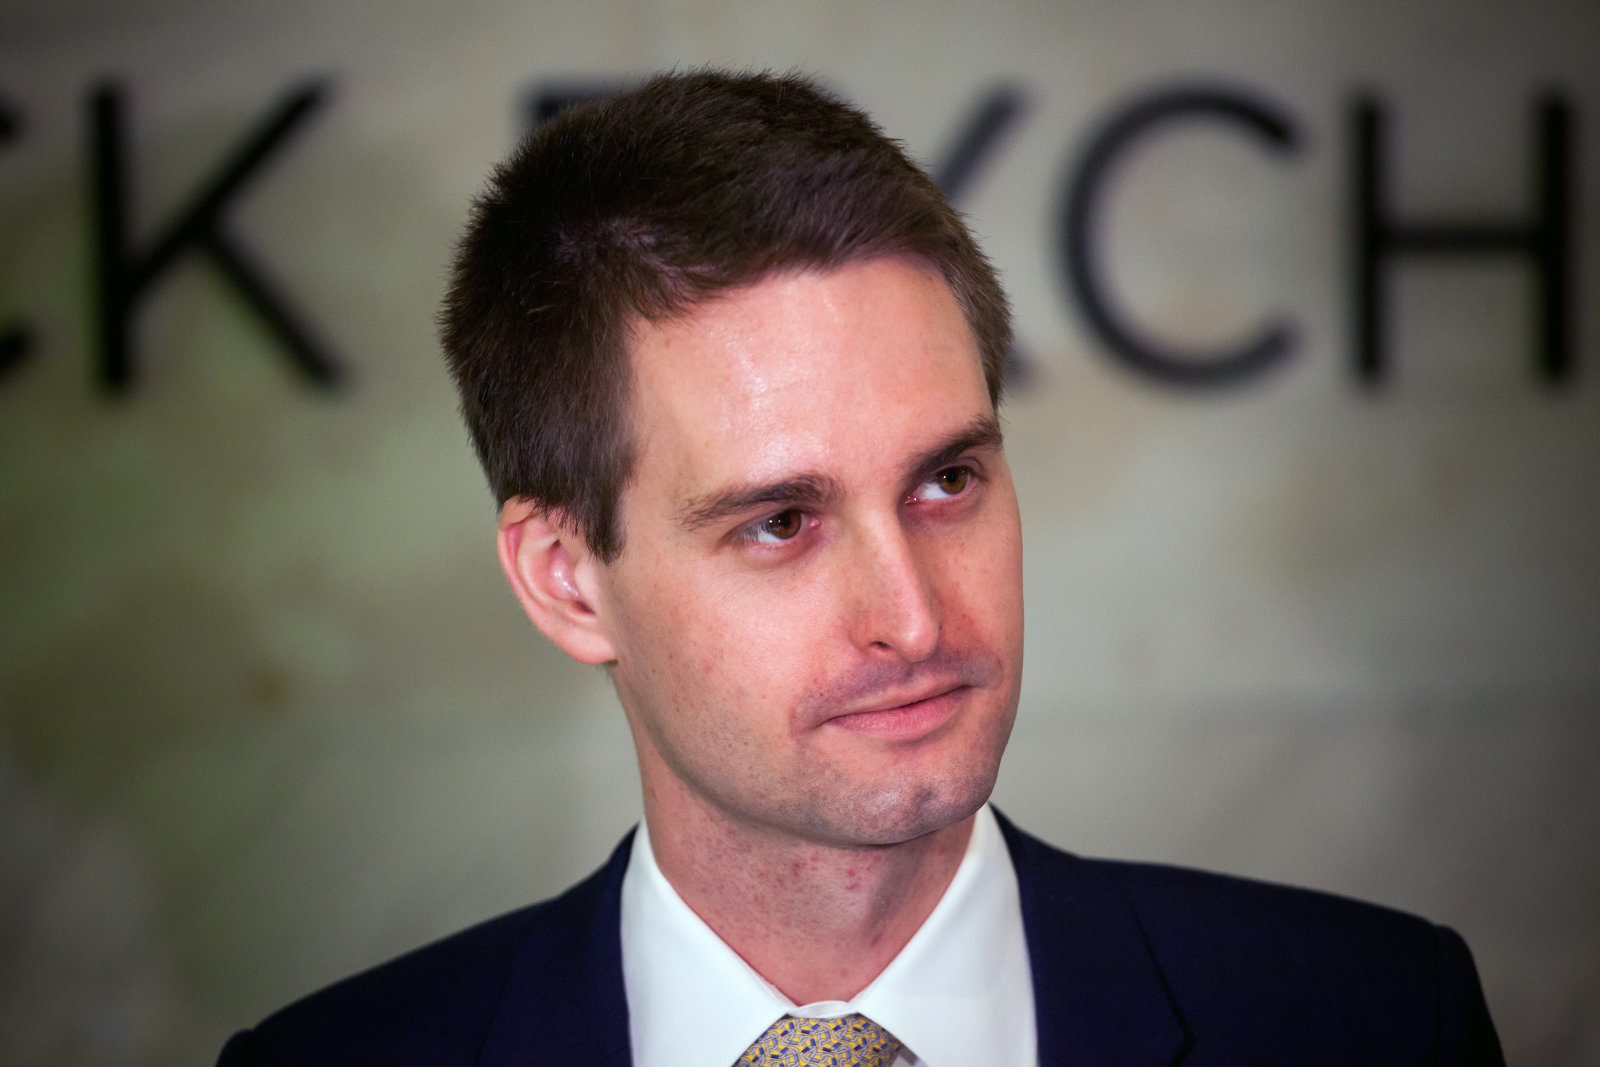 Evan Spiegel, co-founder and chief executive officer of Snap Inc., stands on the floor of the New York Stock Exchange (NYSE) during the company's initial public offering (IPO) in New York, U.S., on Thursday, March 2, 2017. Snap Inc., maker of the disappearing photo app that relies upon the fickle favor of millennials, jumped in its trading debut after pricing its initial public offering above the marketed range. Photographer: Michael Nagle/Bloomberg via Getty Images